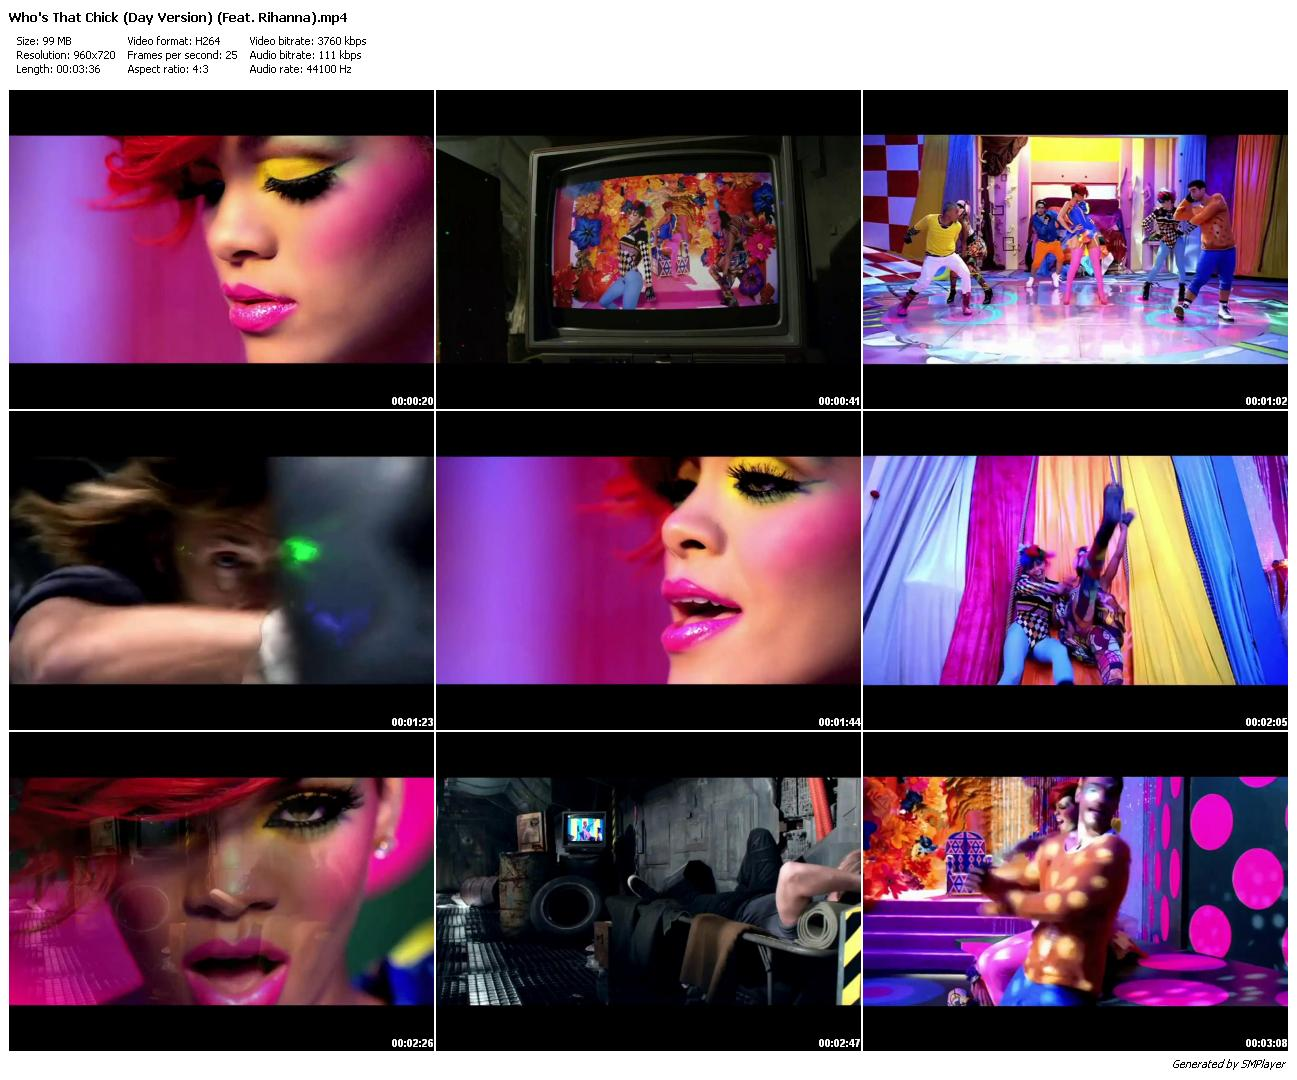 http://4.bp.blogspot.com/-Xj1YUUQ8Tjo/T6_QWLj3iRI/AAAAAAAAFDY/5L0G7Ty_Hqo/s1600/Who\'s+That+Chick+(Day+Version)+(Feat.+Rihanna)_preview.jpg